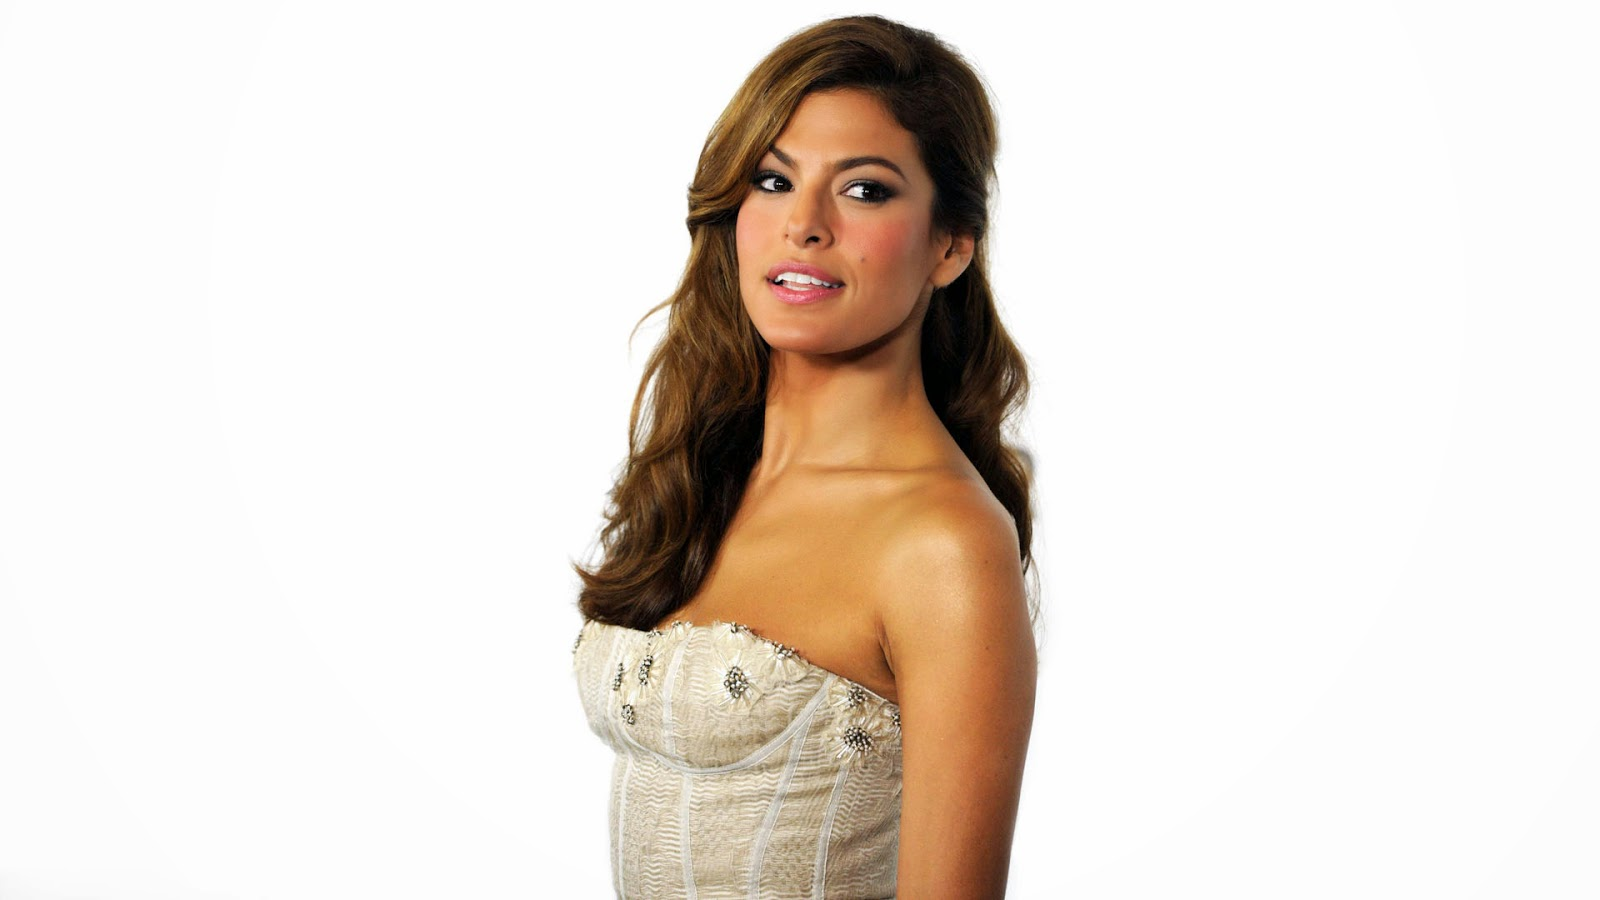 Eva mendes top 10 hollywood actress desktop images